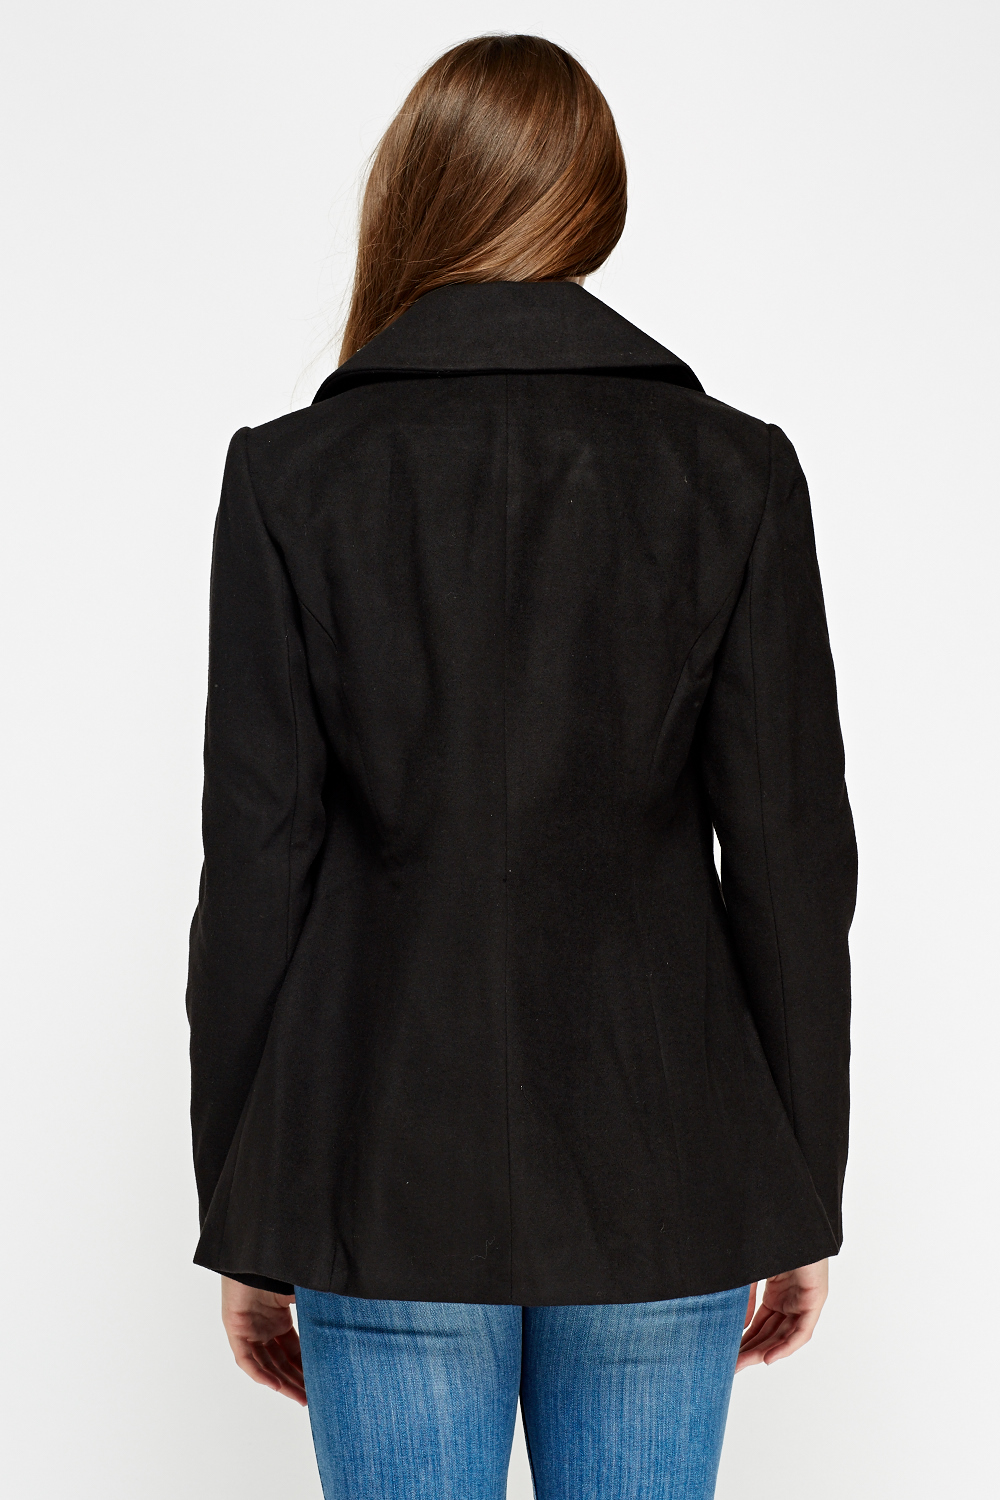 Find great deals on eBay for black fitted jacket. Shop with confidence.